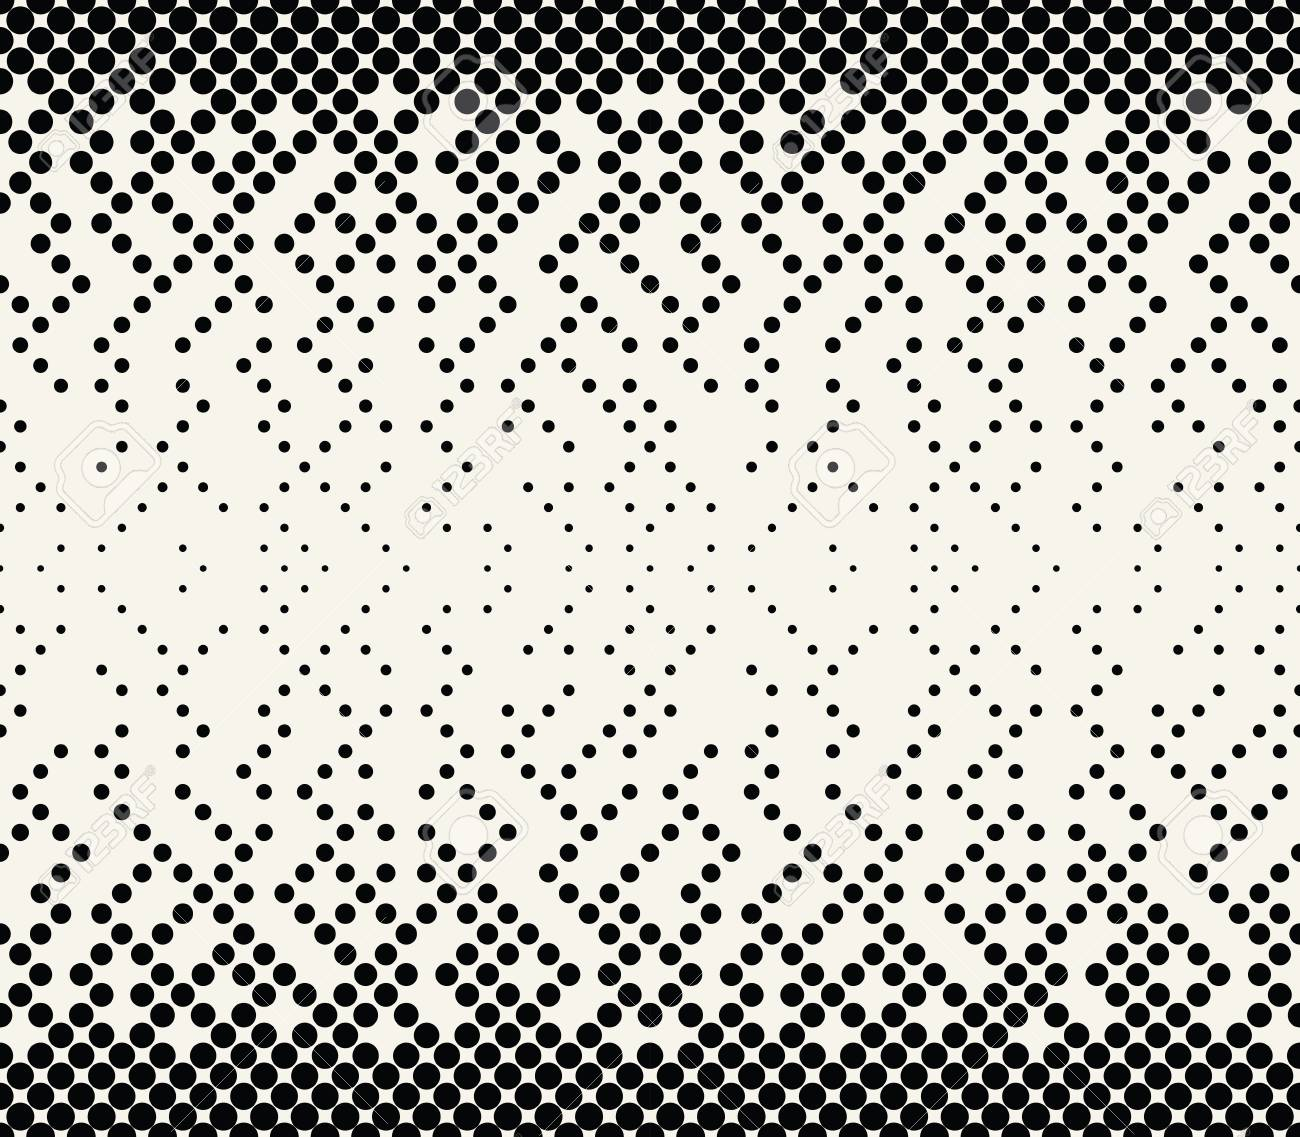 abstract halftone geometric vector patter - 97575771